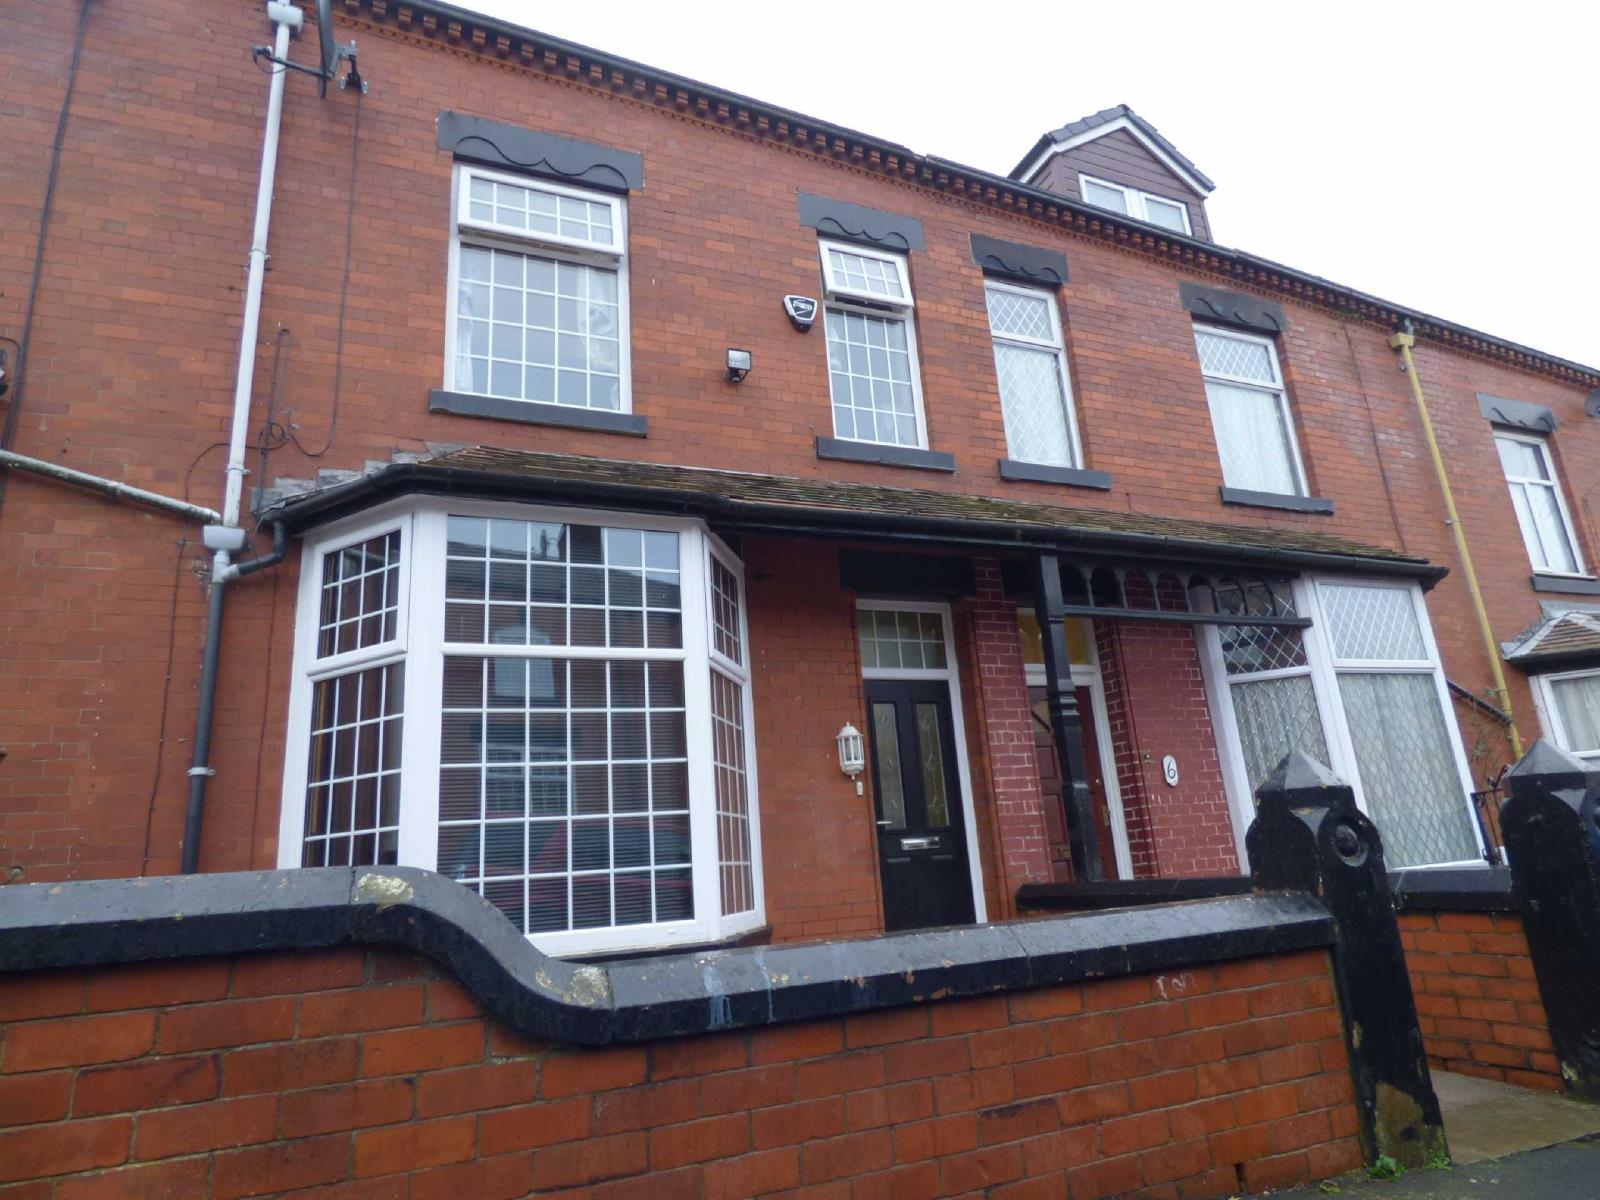 4 Bedrooms Terraced House for sale in Newport Street, Coppice, Oldham, OL8